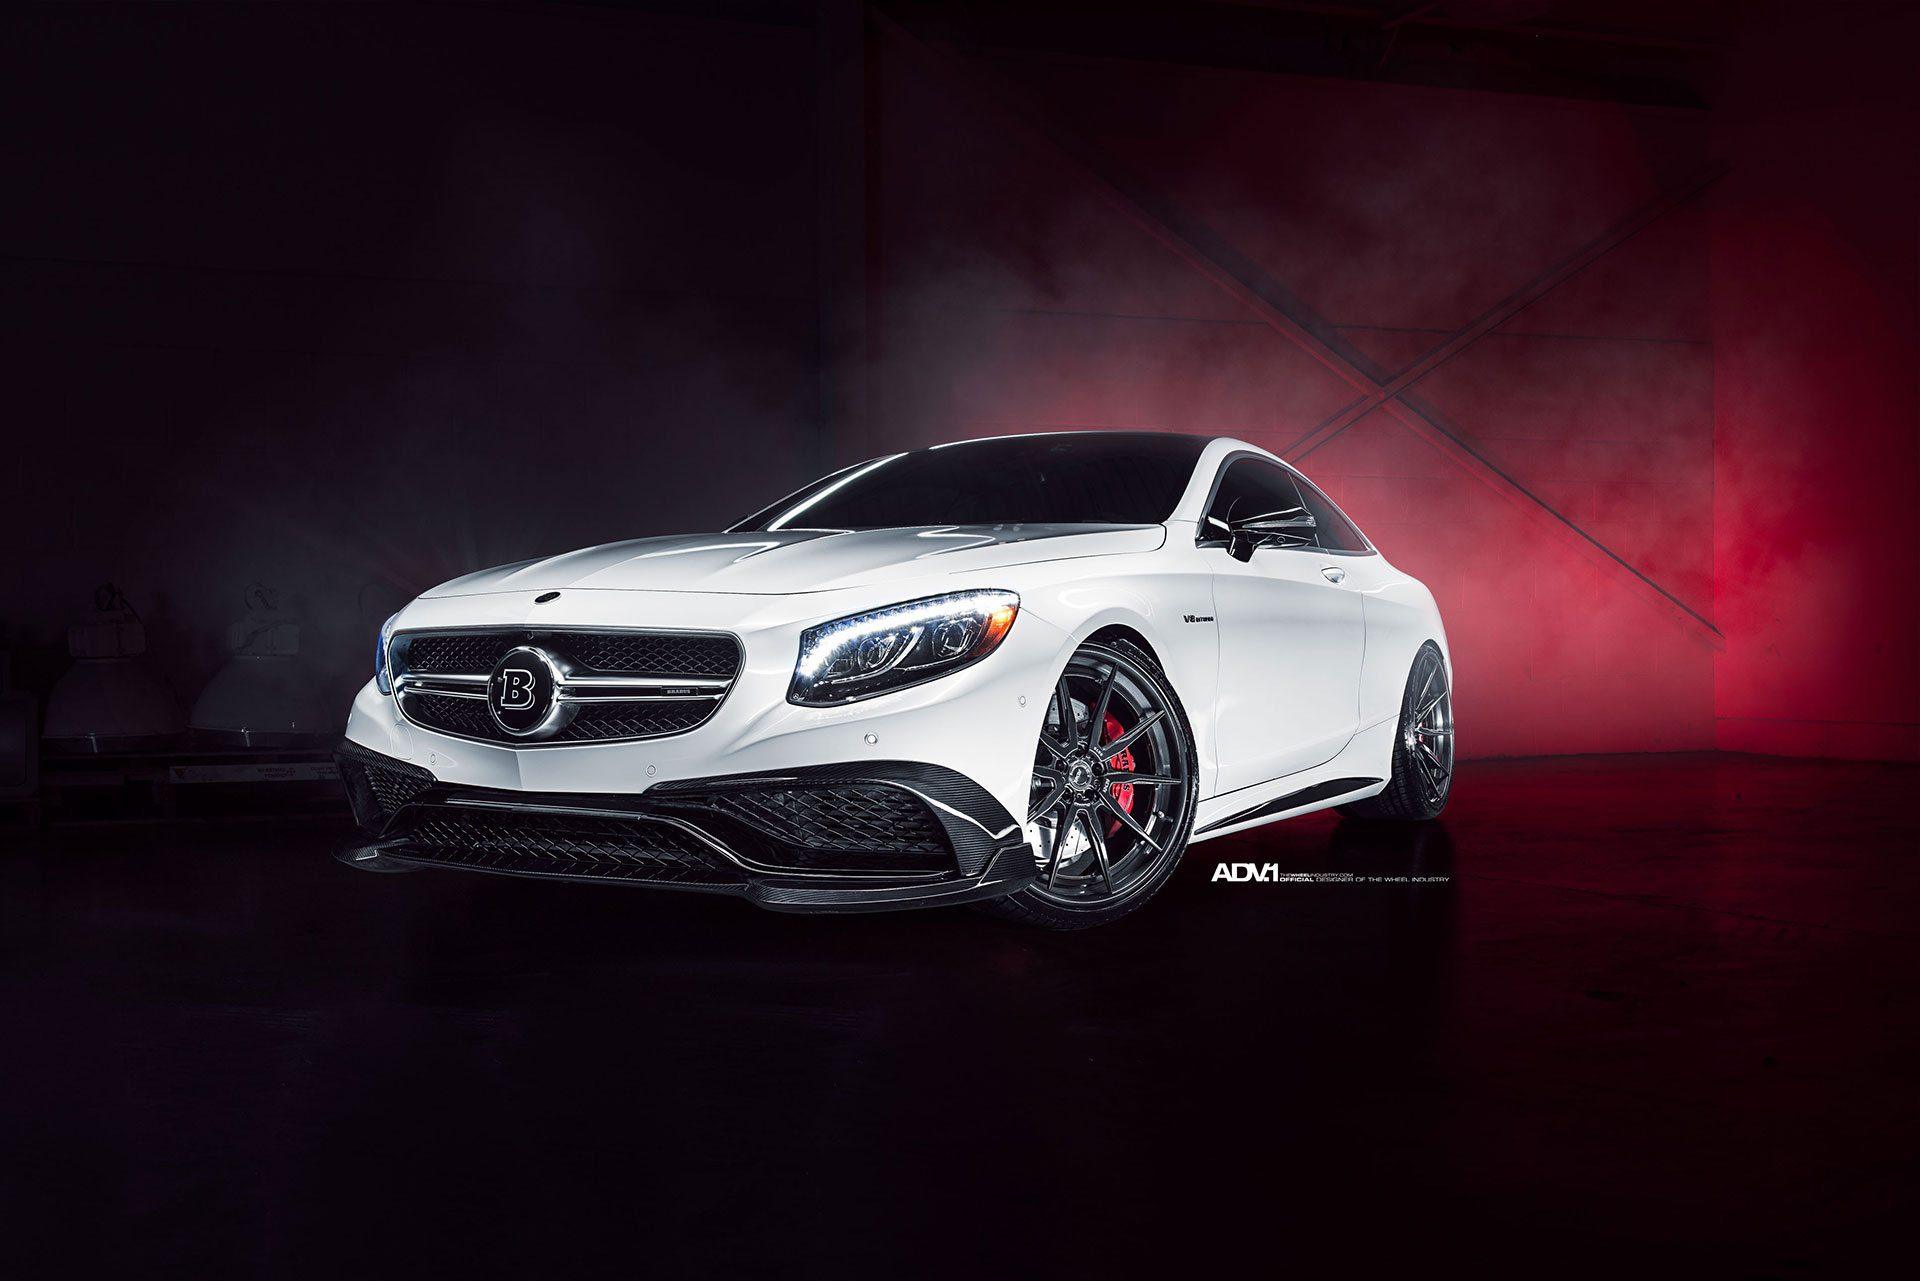 White mercedes benz s63 gets upgraded with adv 1 wheels for White mercedes benz truck